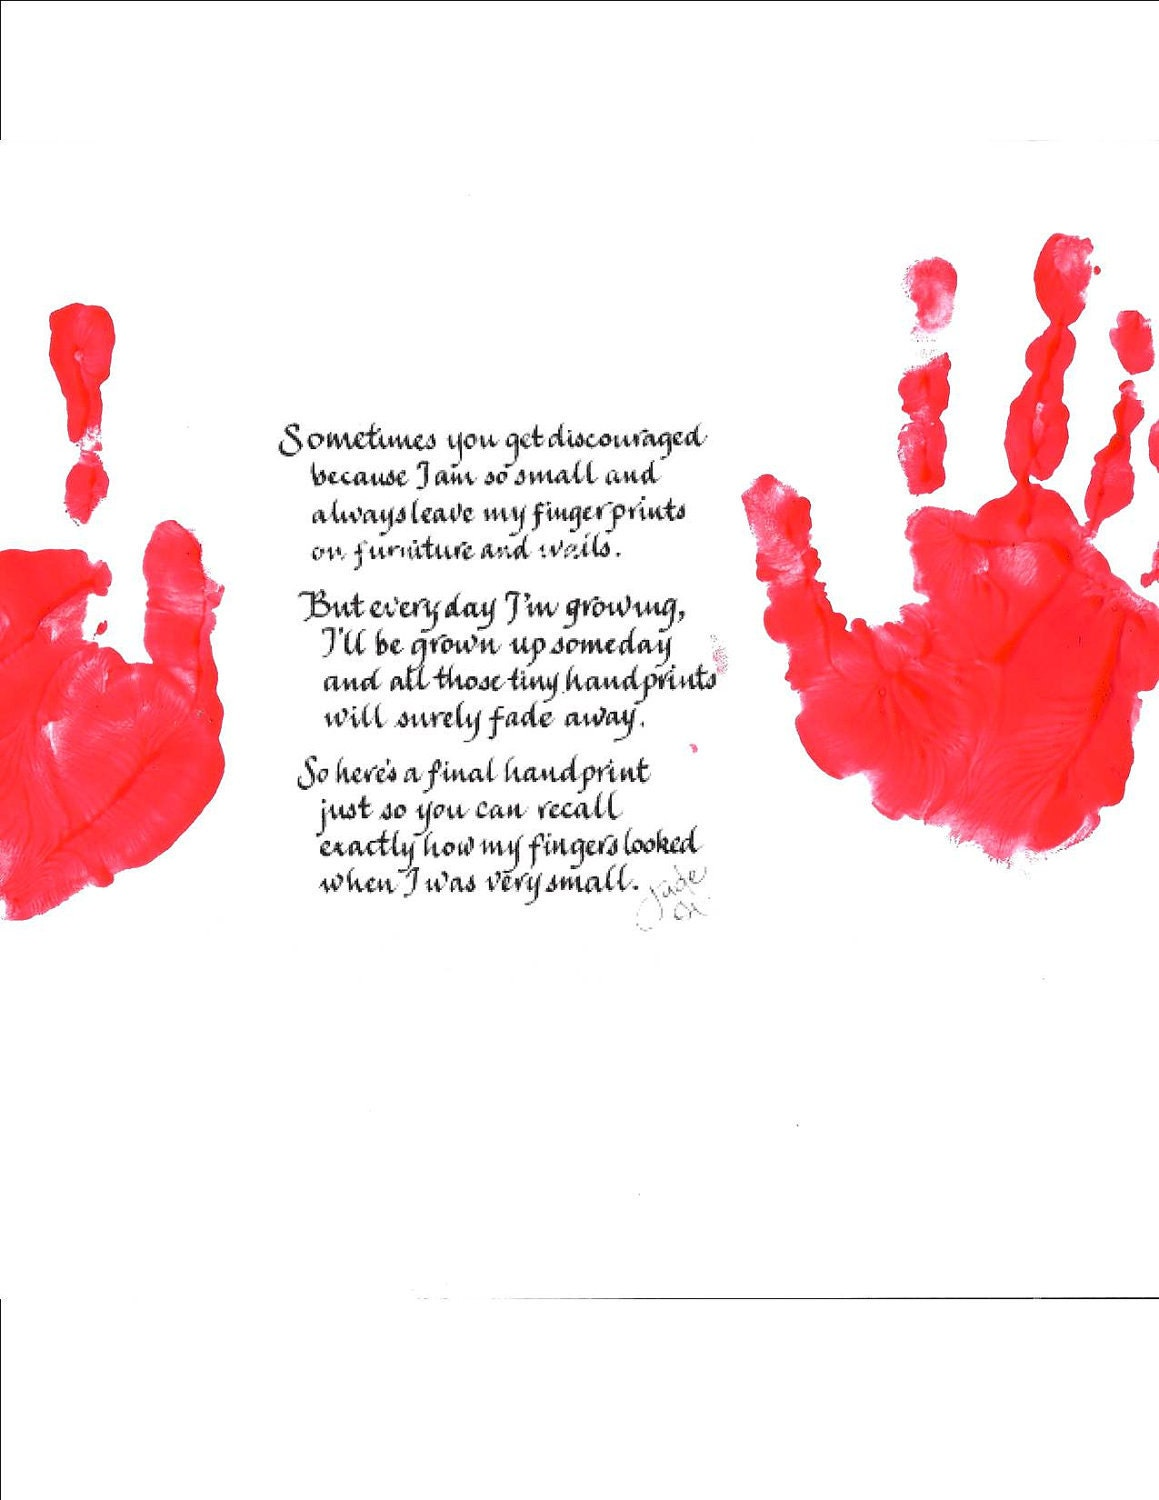 Grandparents Handprint Poems Images & Pictures - Becuo